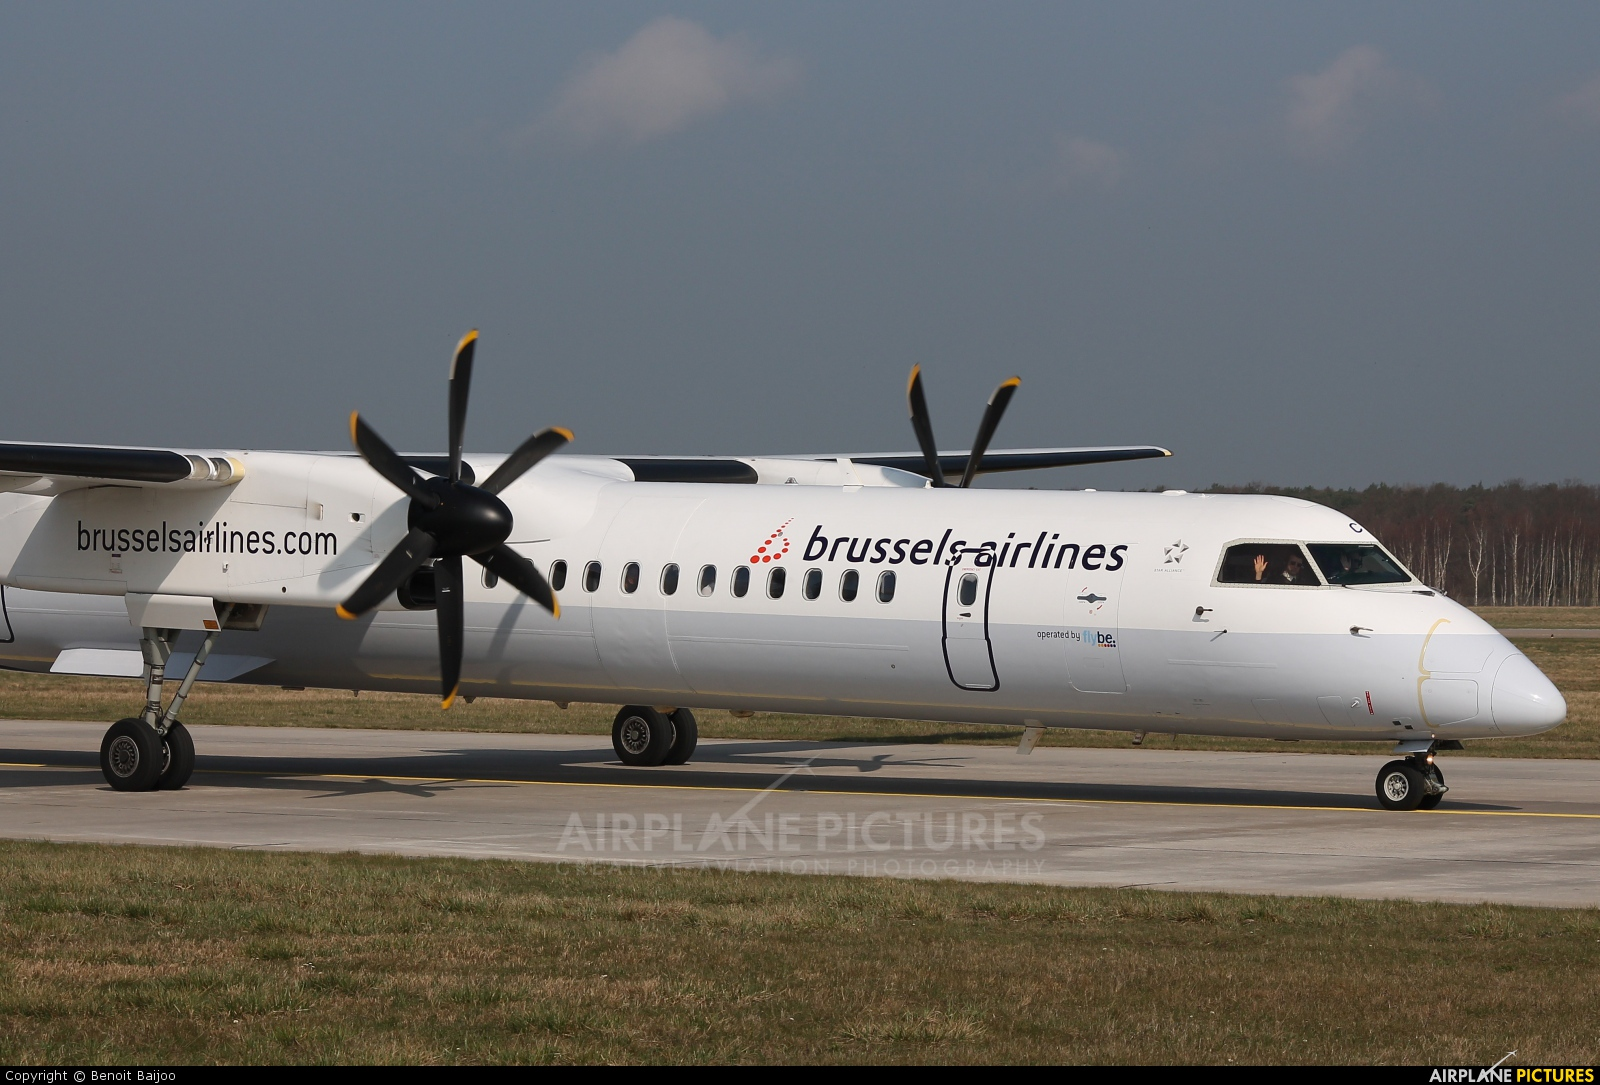 Brussels Airlines G-JECY aircraft at Hannover - Langenhagen